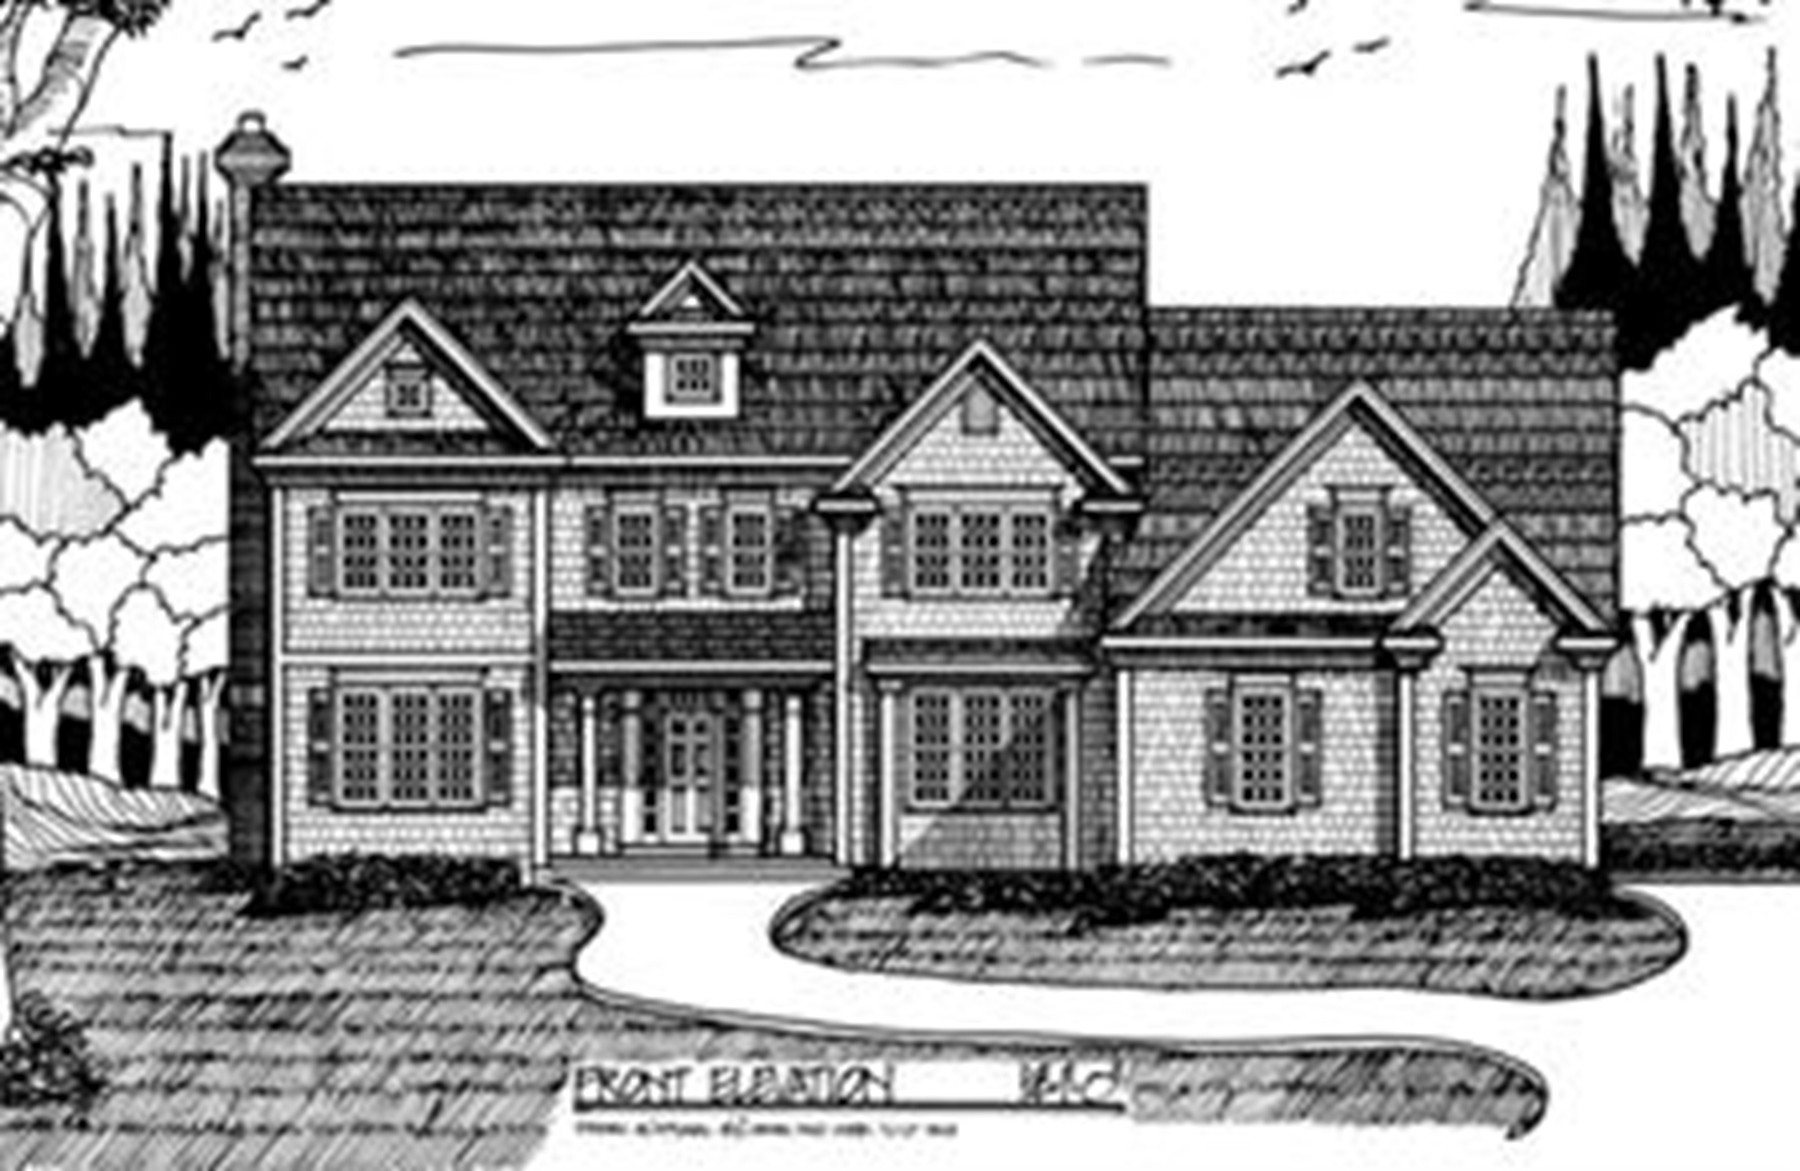 Single Family Home for Sale at Highland Park Open Concept Monroe Model Lot 19 Stoney Brook Road Hopkinton, Massachusetts 01748 United States